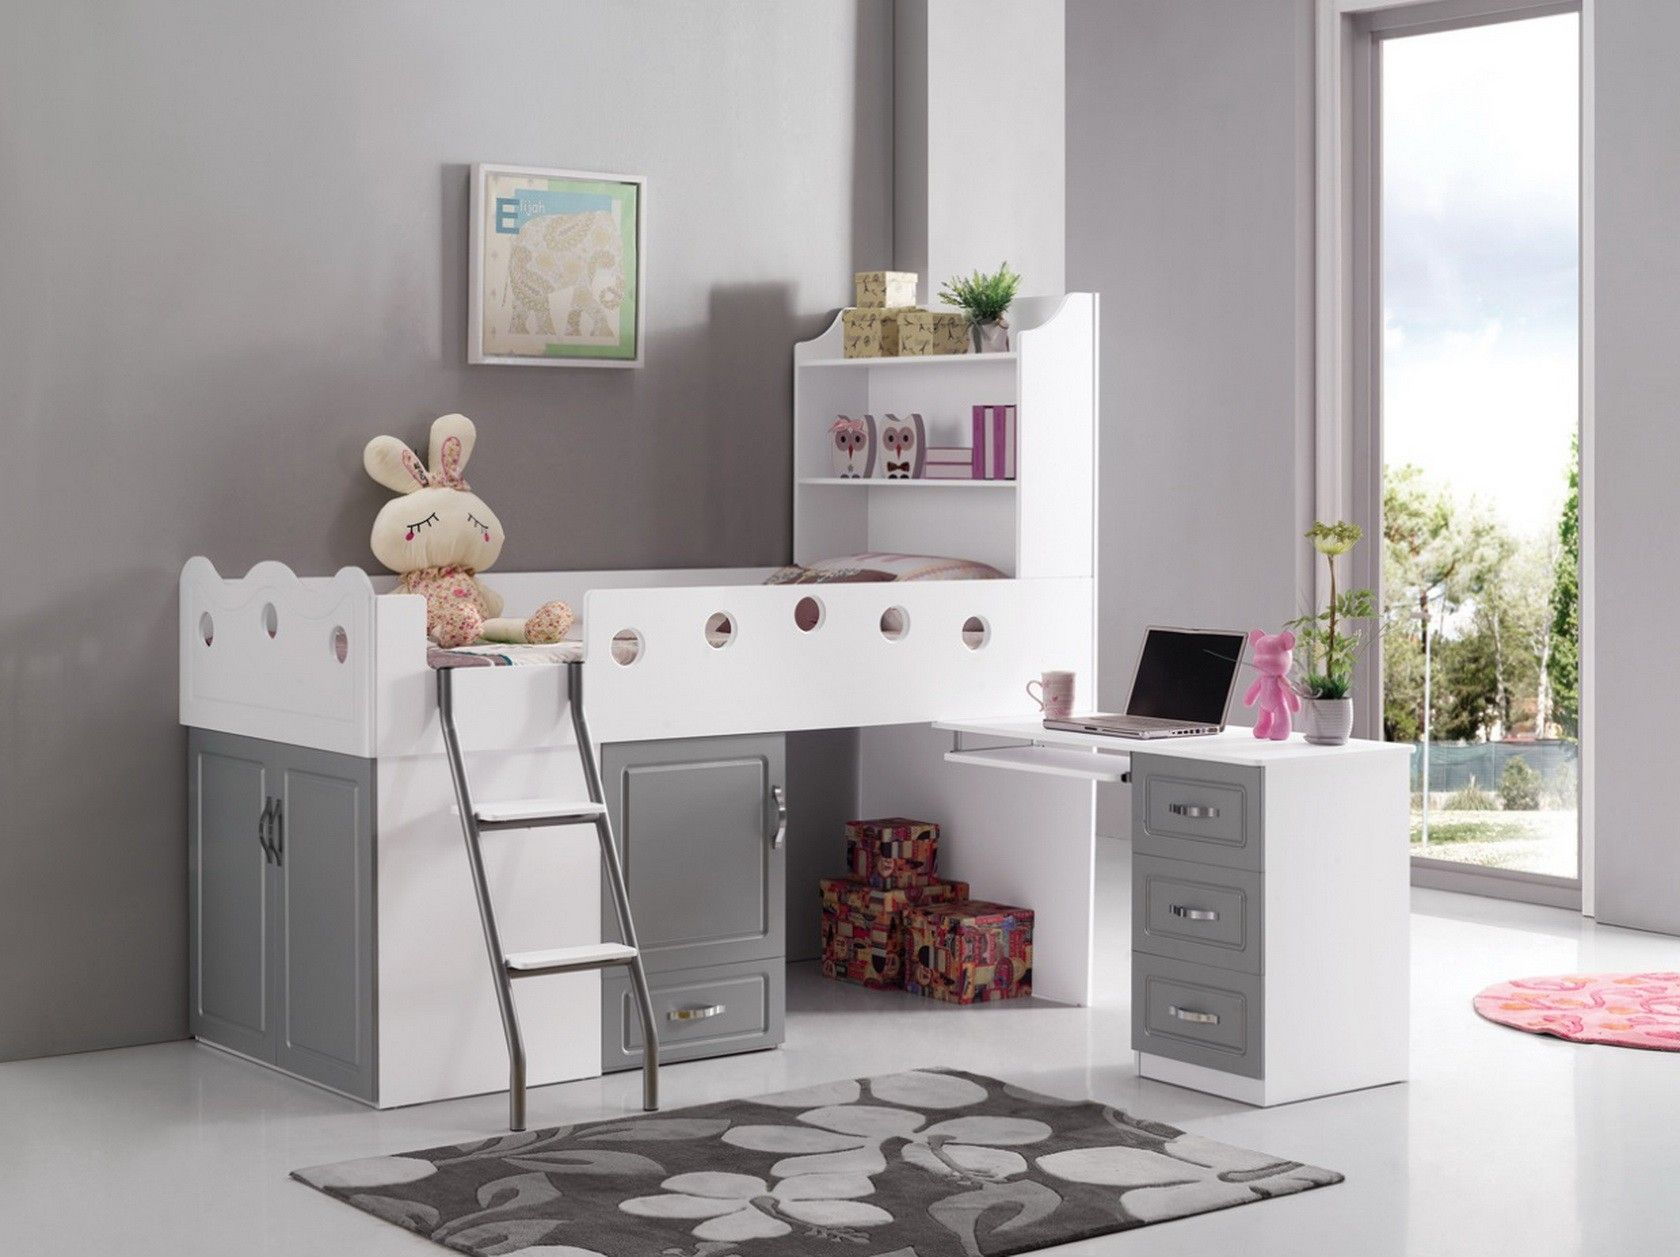 lit combin pour enfant blanc et gris lit combin pour enfants et gris. Black Bedroom Furniture Sets. Home Design Ideas